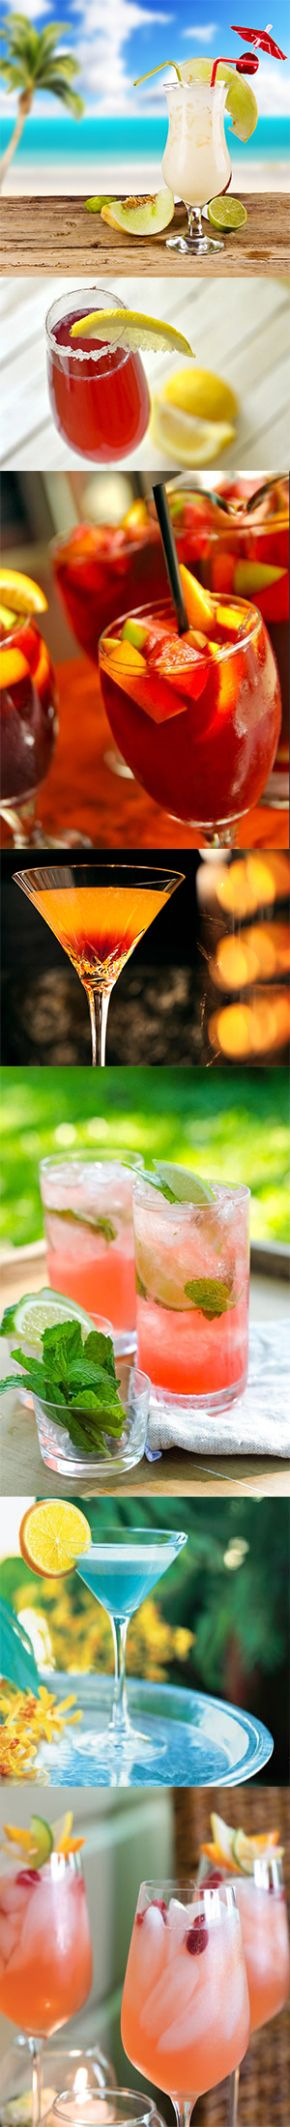 10 Famouse Bartender Recipes – Part 3 – Daily Update - Make The Famous Bartender Recipes From The Best Bartenders In The World !